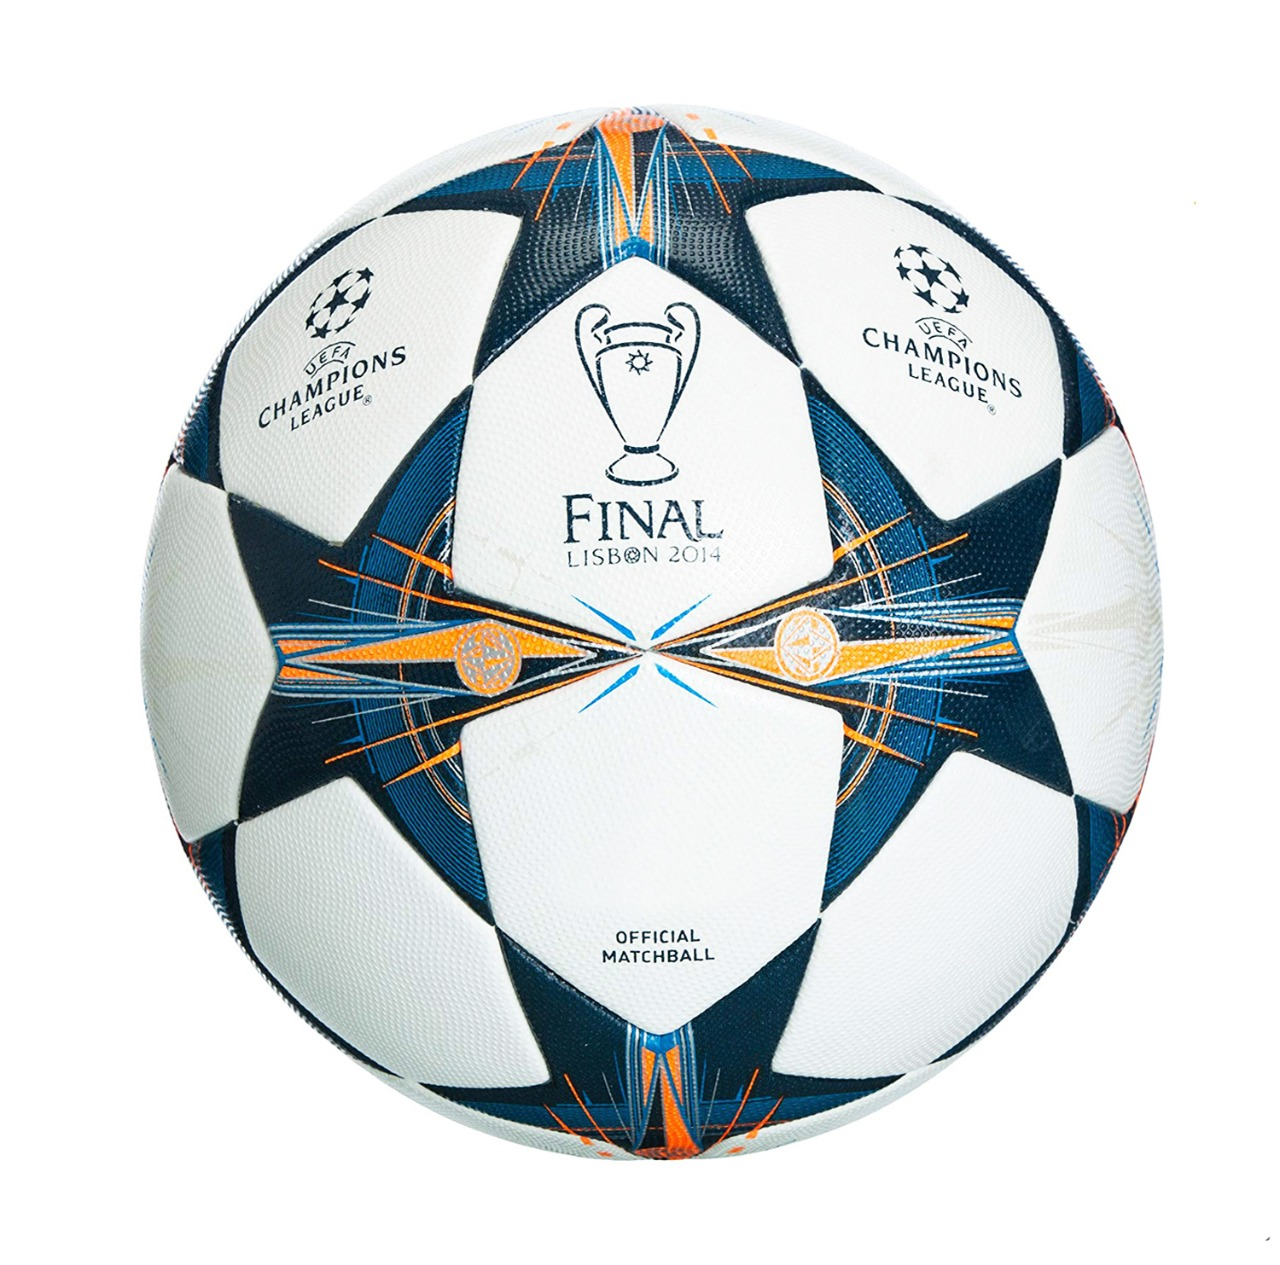 UEFA Champions League Final LISBON 2014 Thermal Molded Football PE-517